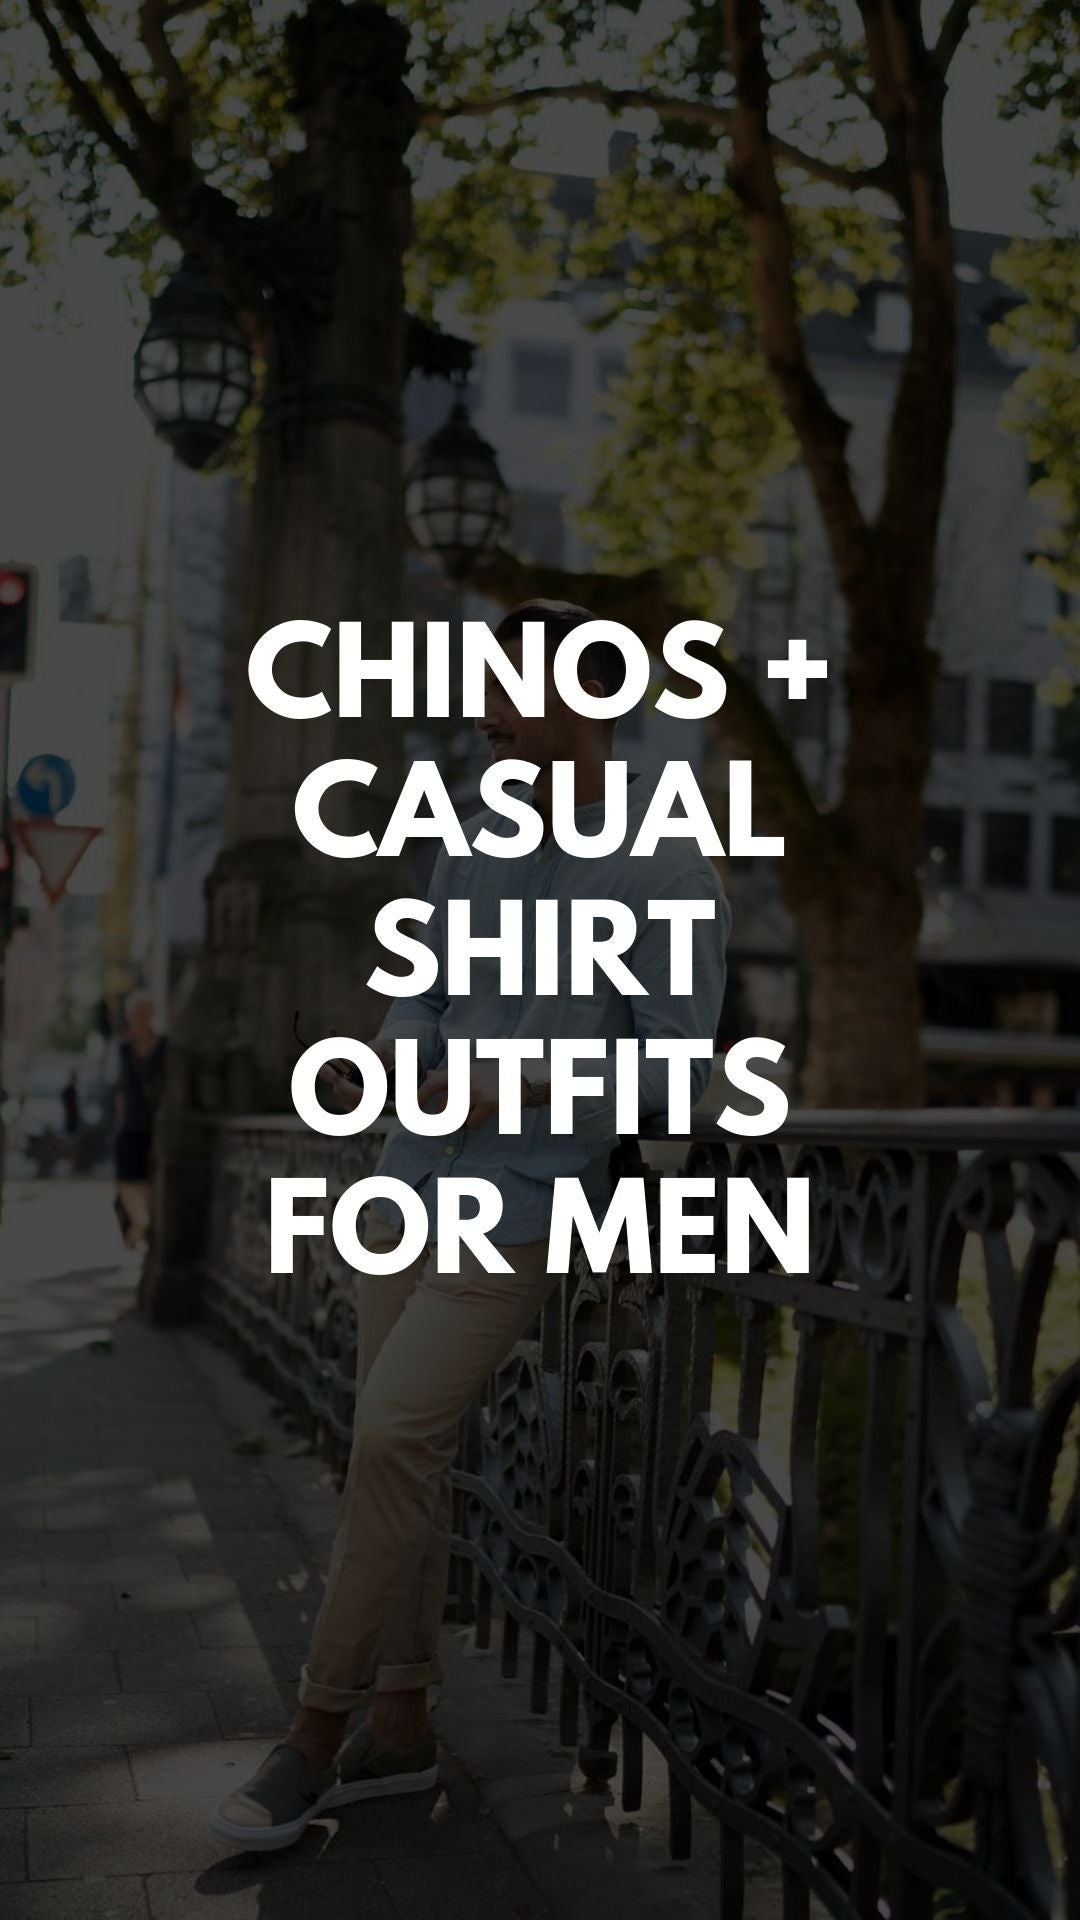 Chinos + Casual Shirt Outfits For Men #mensfashion #streetstyle